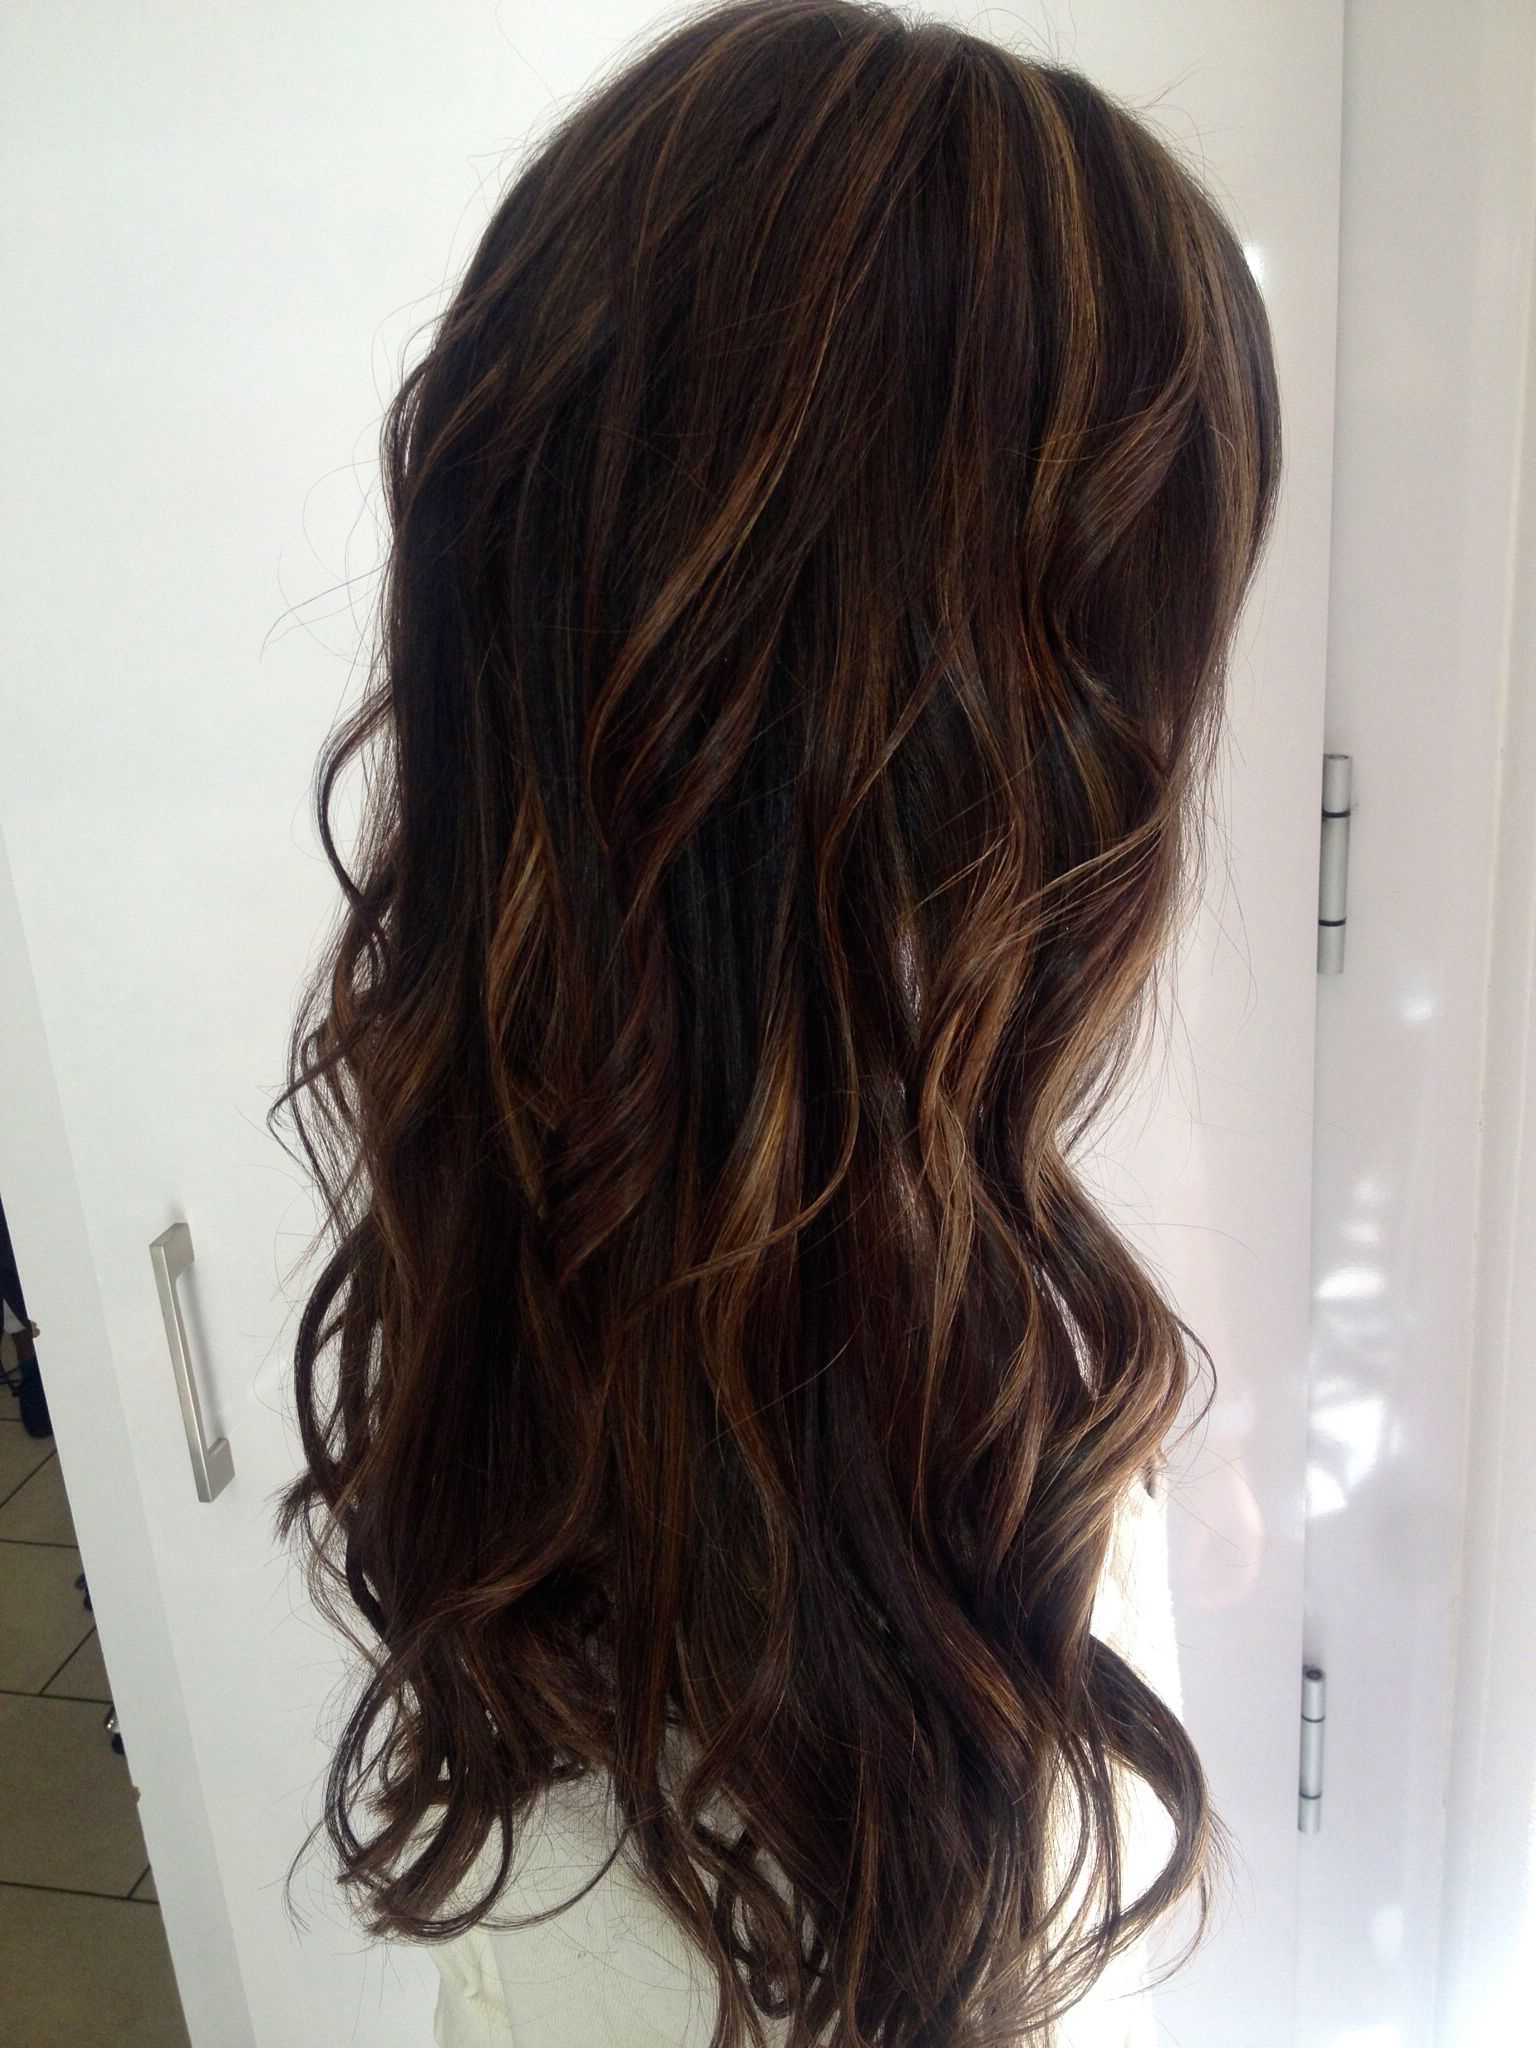 Latest Honey Kissed Highlights Curls Hairstyles For Brown Hair With Soft Waves ️ And Sun Kissed Highlights (View 3 of 20)